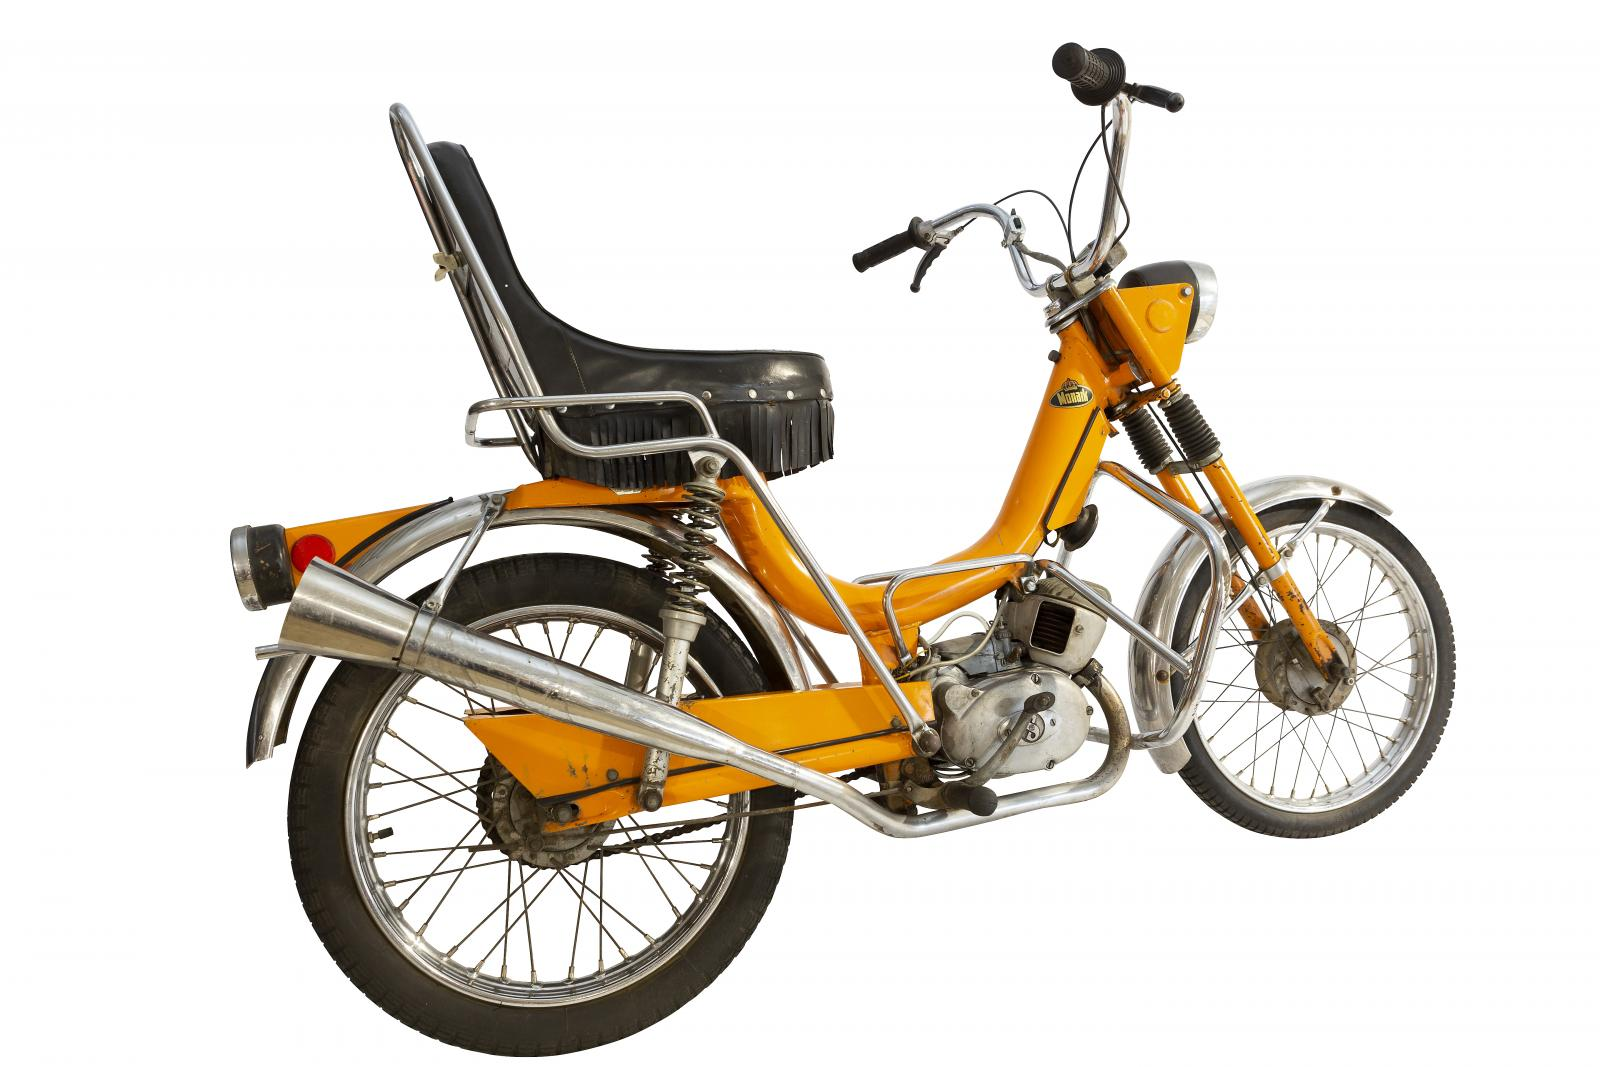 Moped 4/20